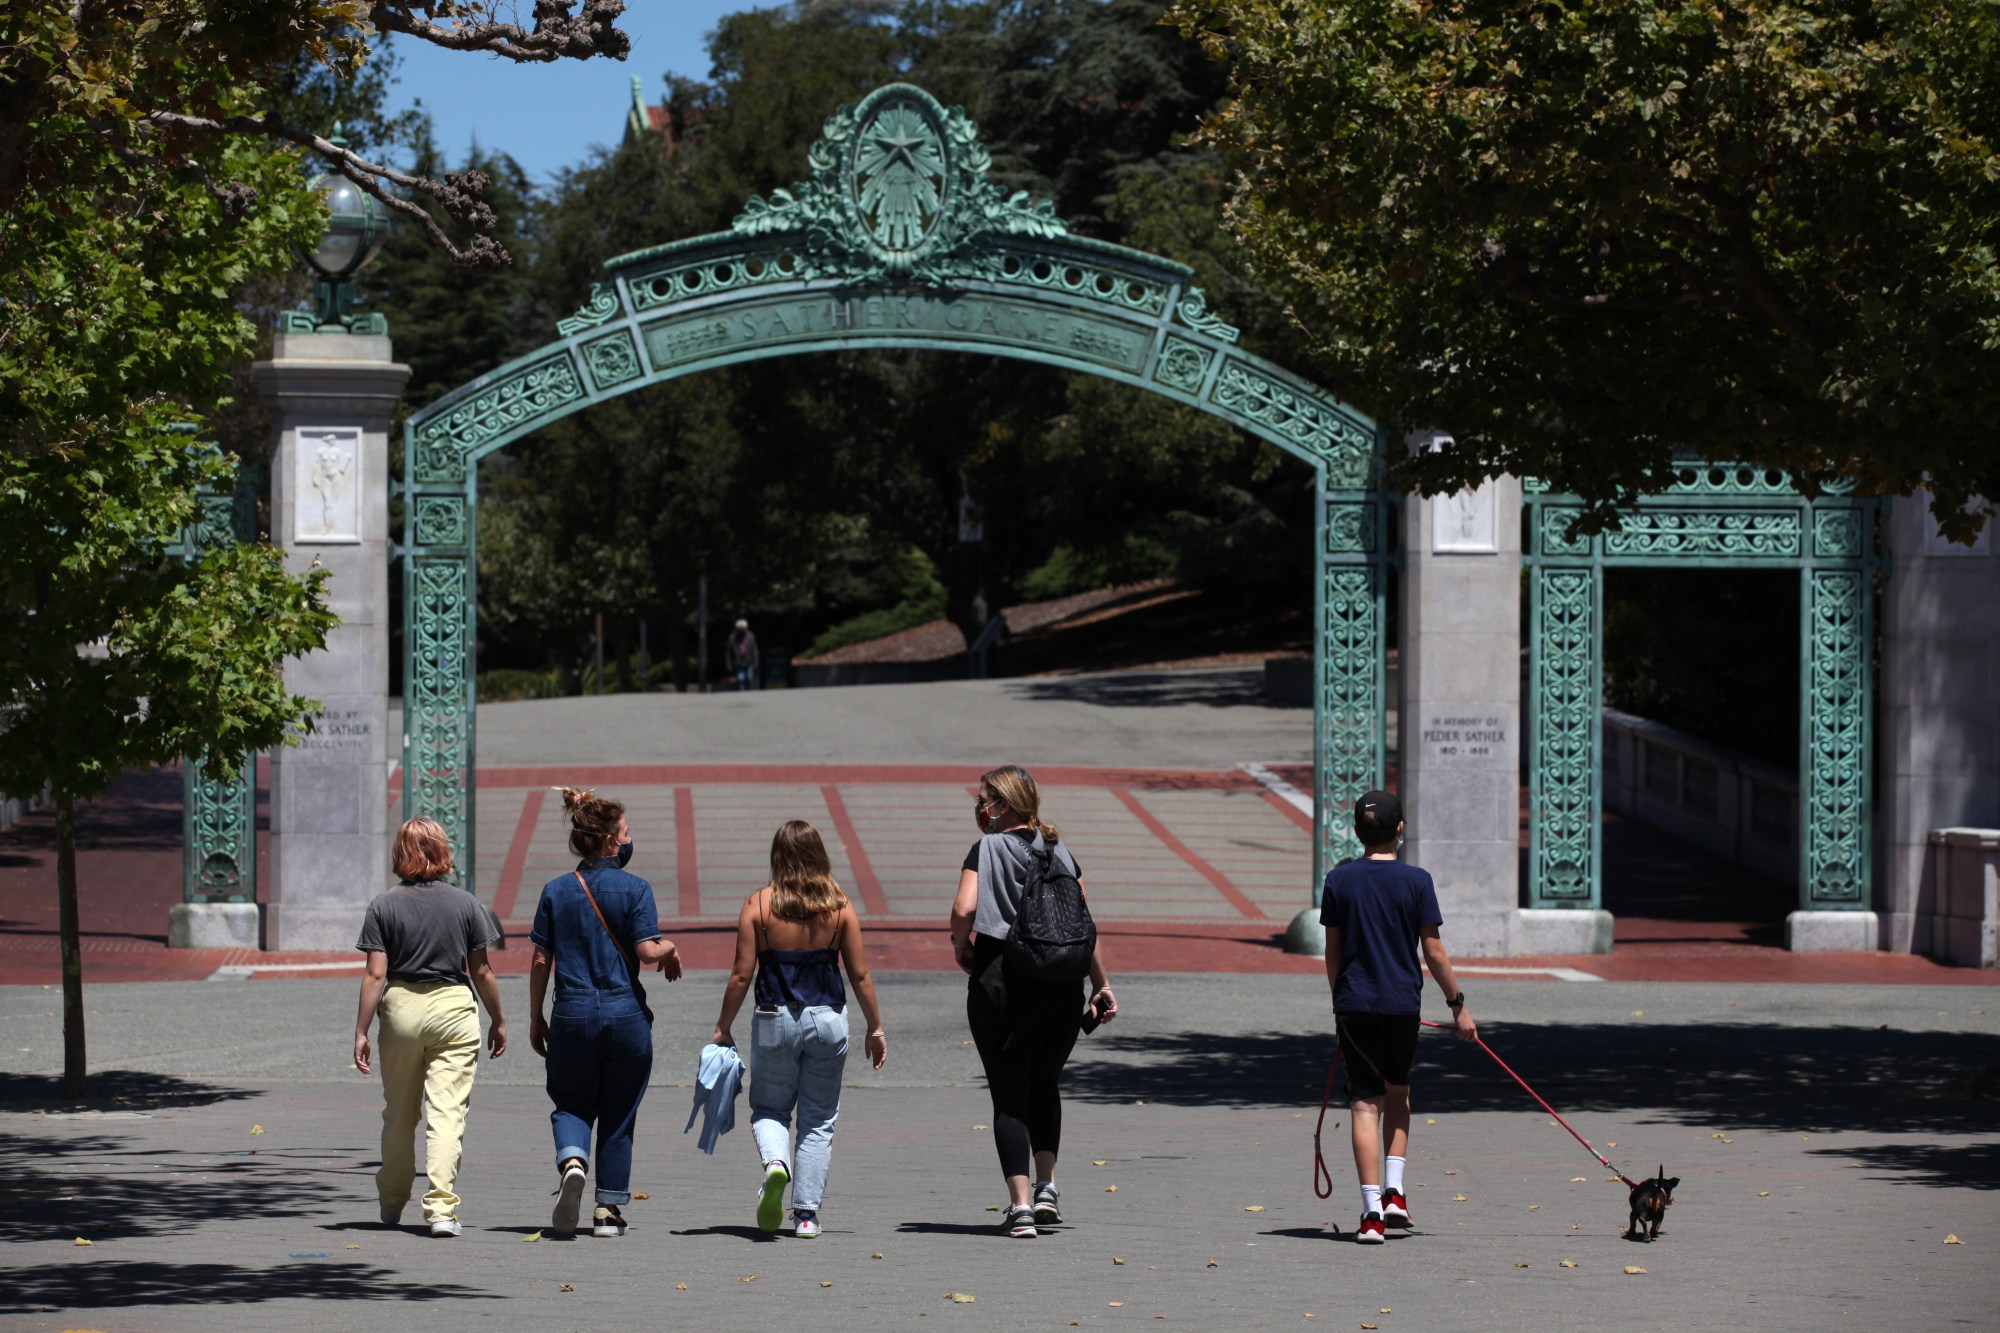 People walk towards Sather Gate on the UC Berkeley campus on July 22, 2020. (Justin Sullivan / Getty Images)